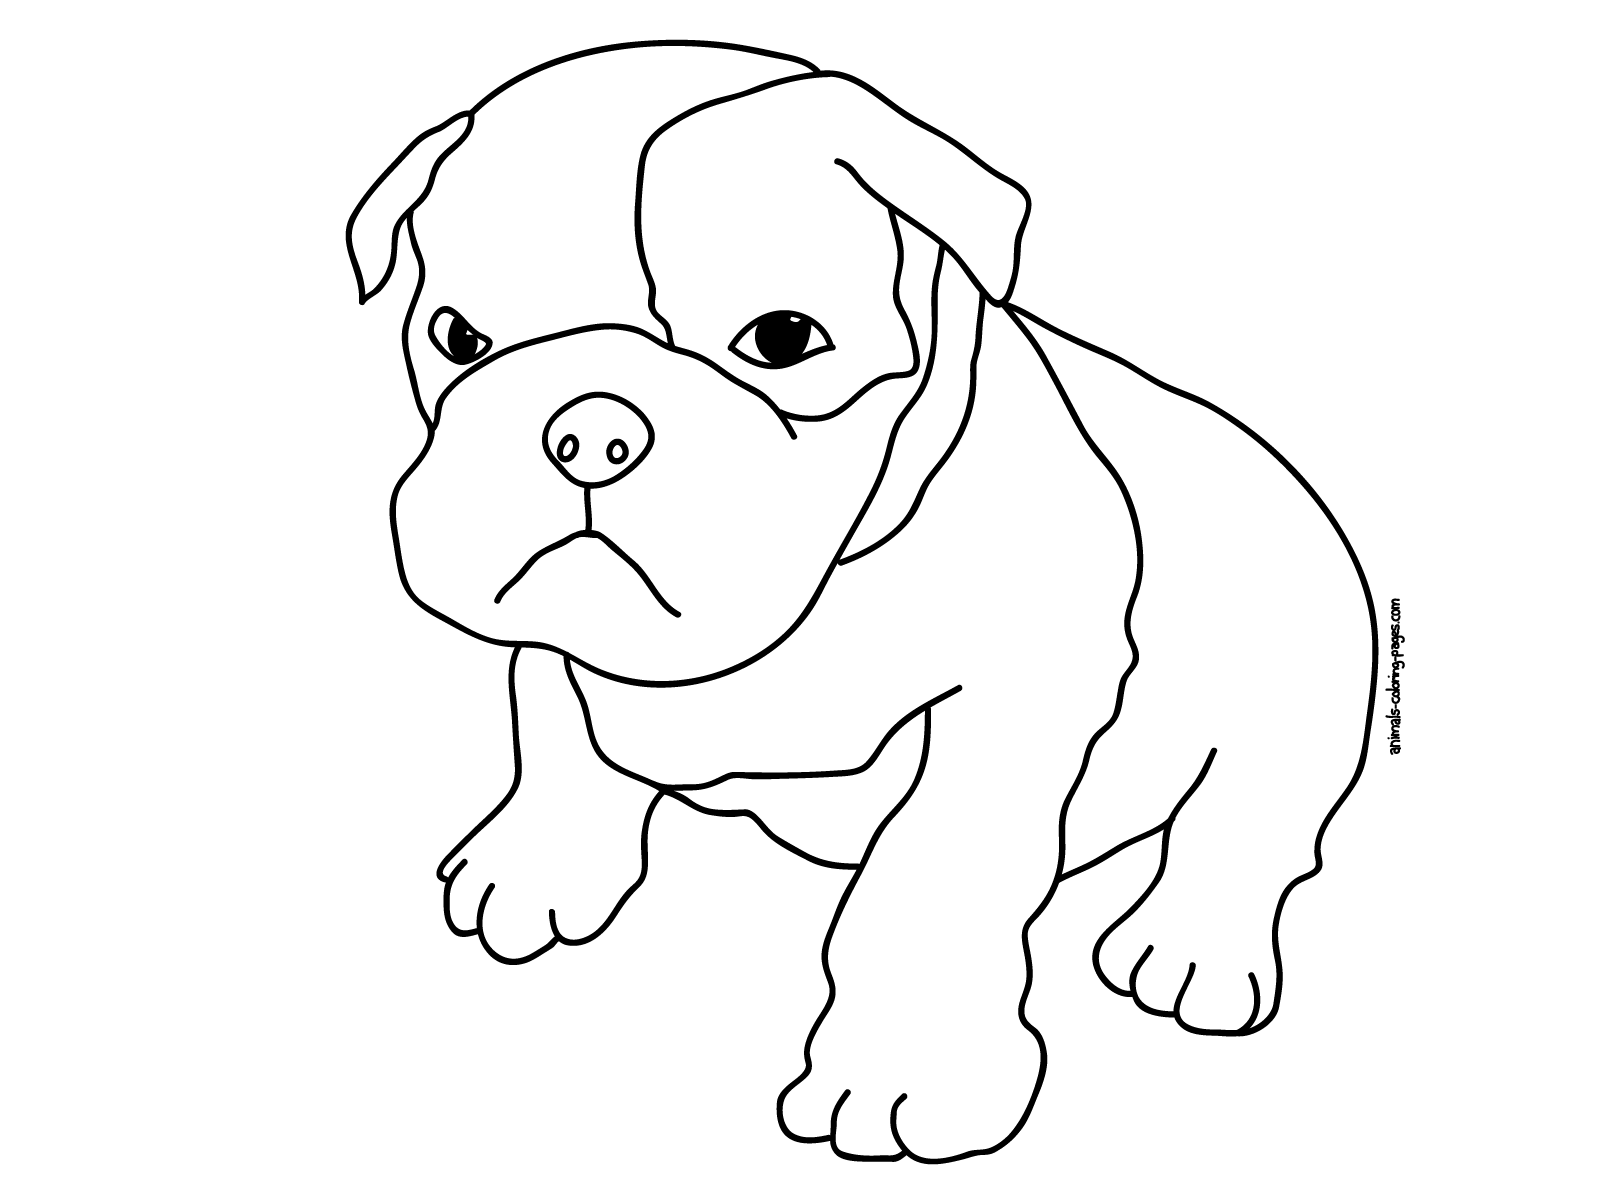 Cute Animal Coloring Pages To Print